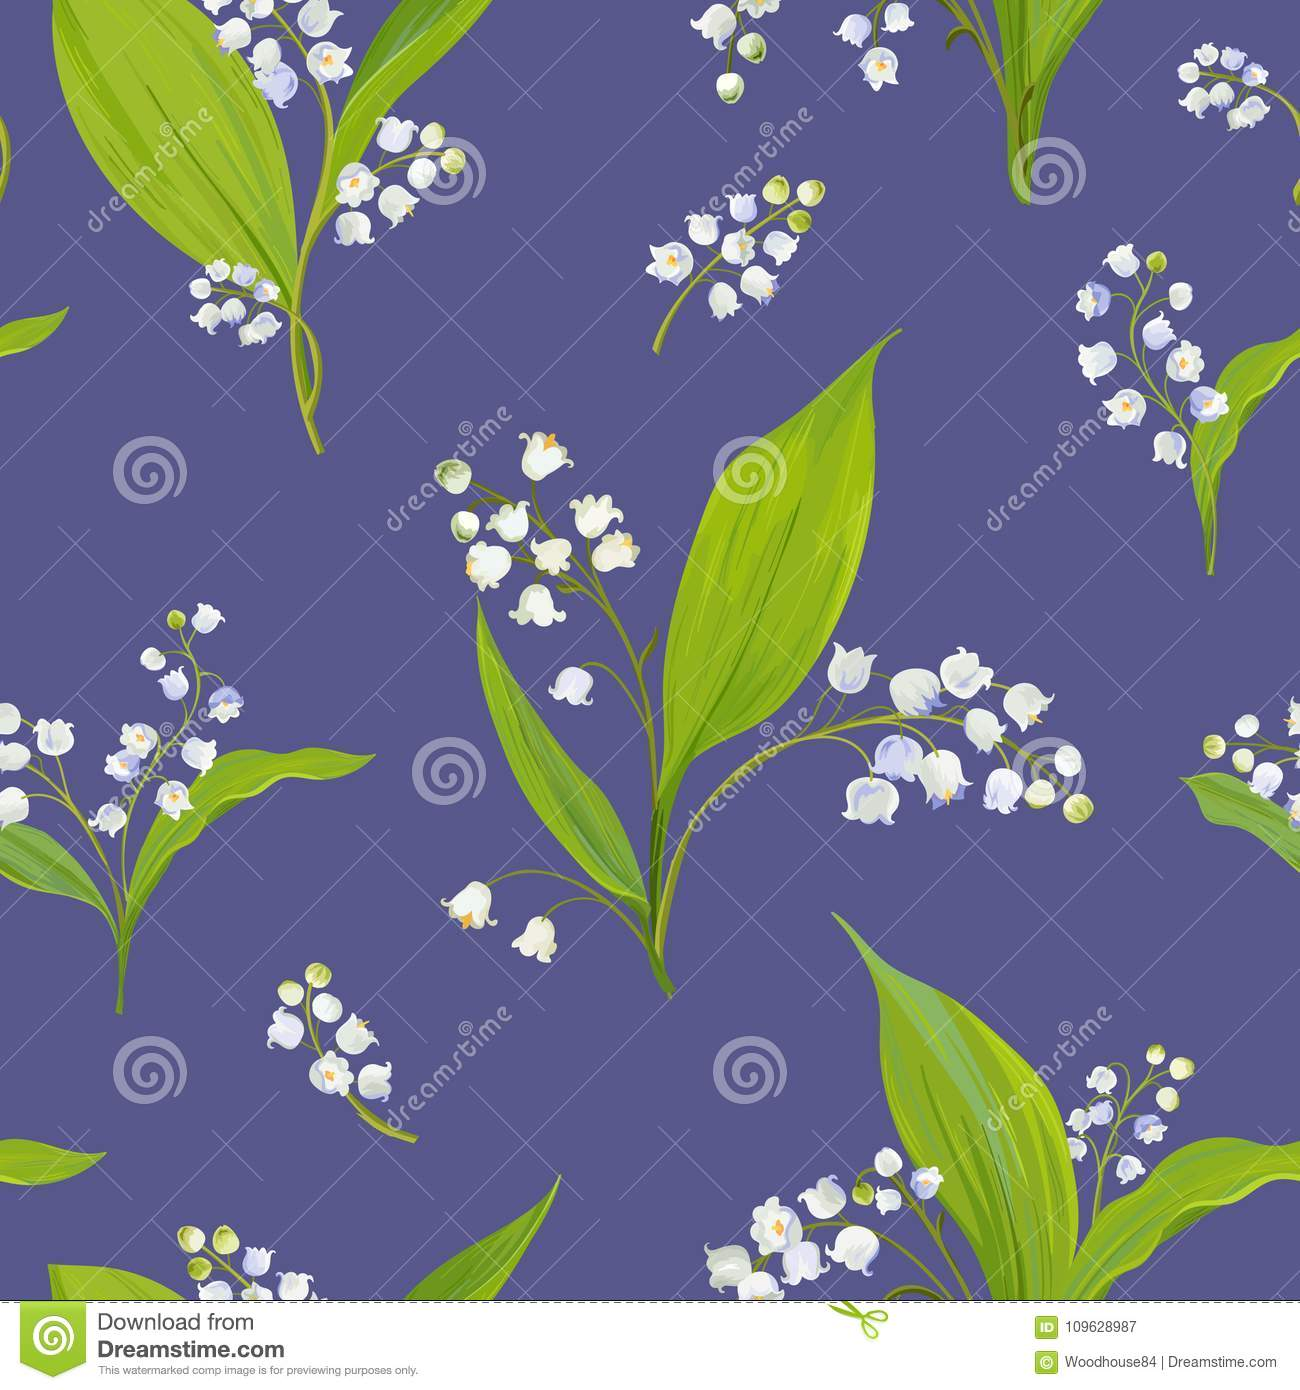 Floral Seamless Pattern With Watercolor Lily Of The Valley Spring